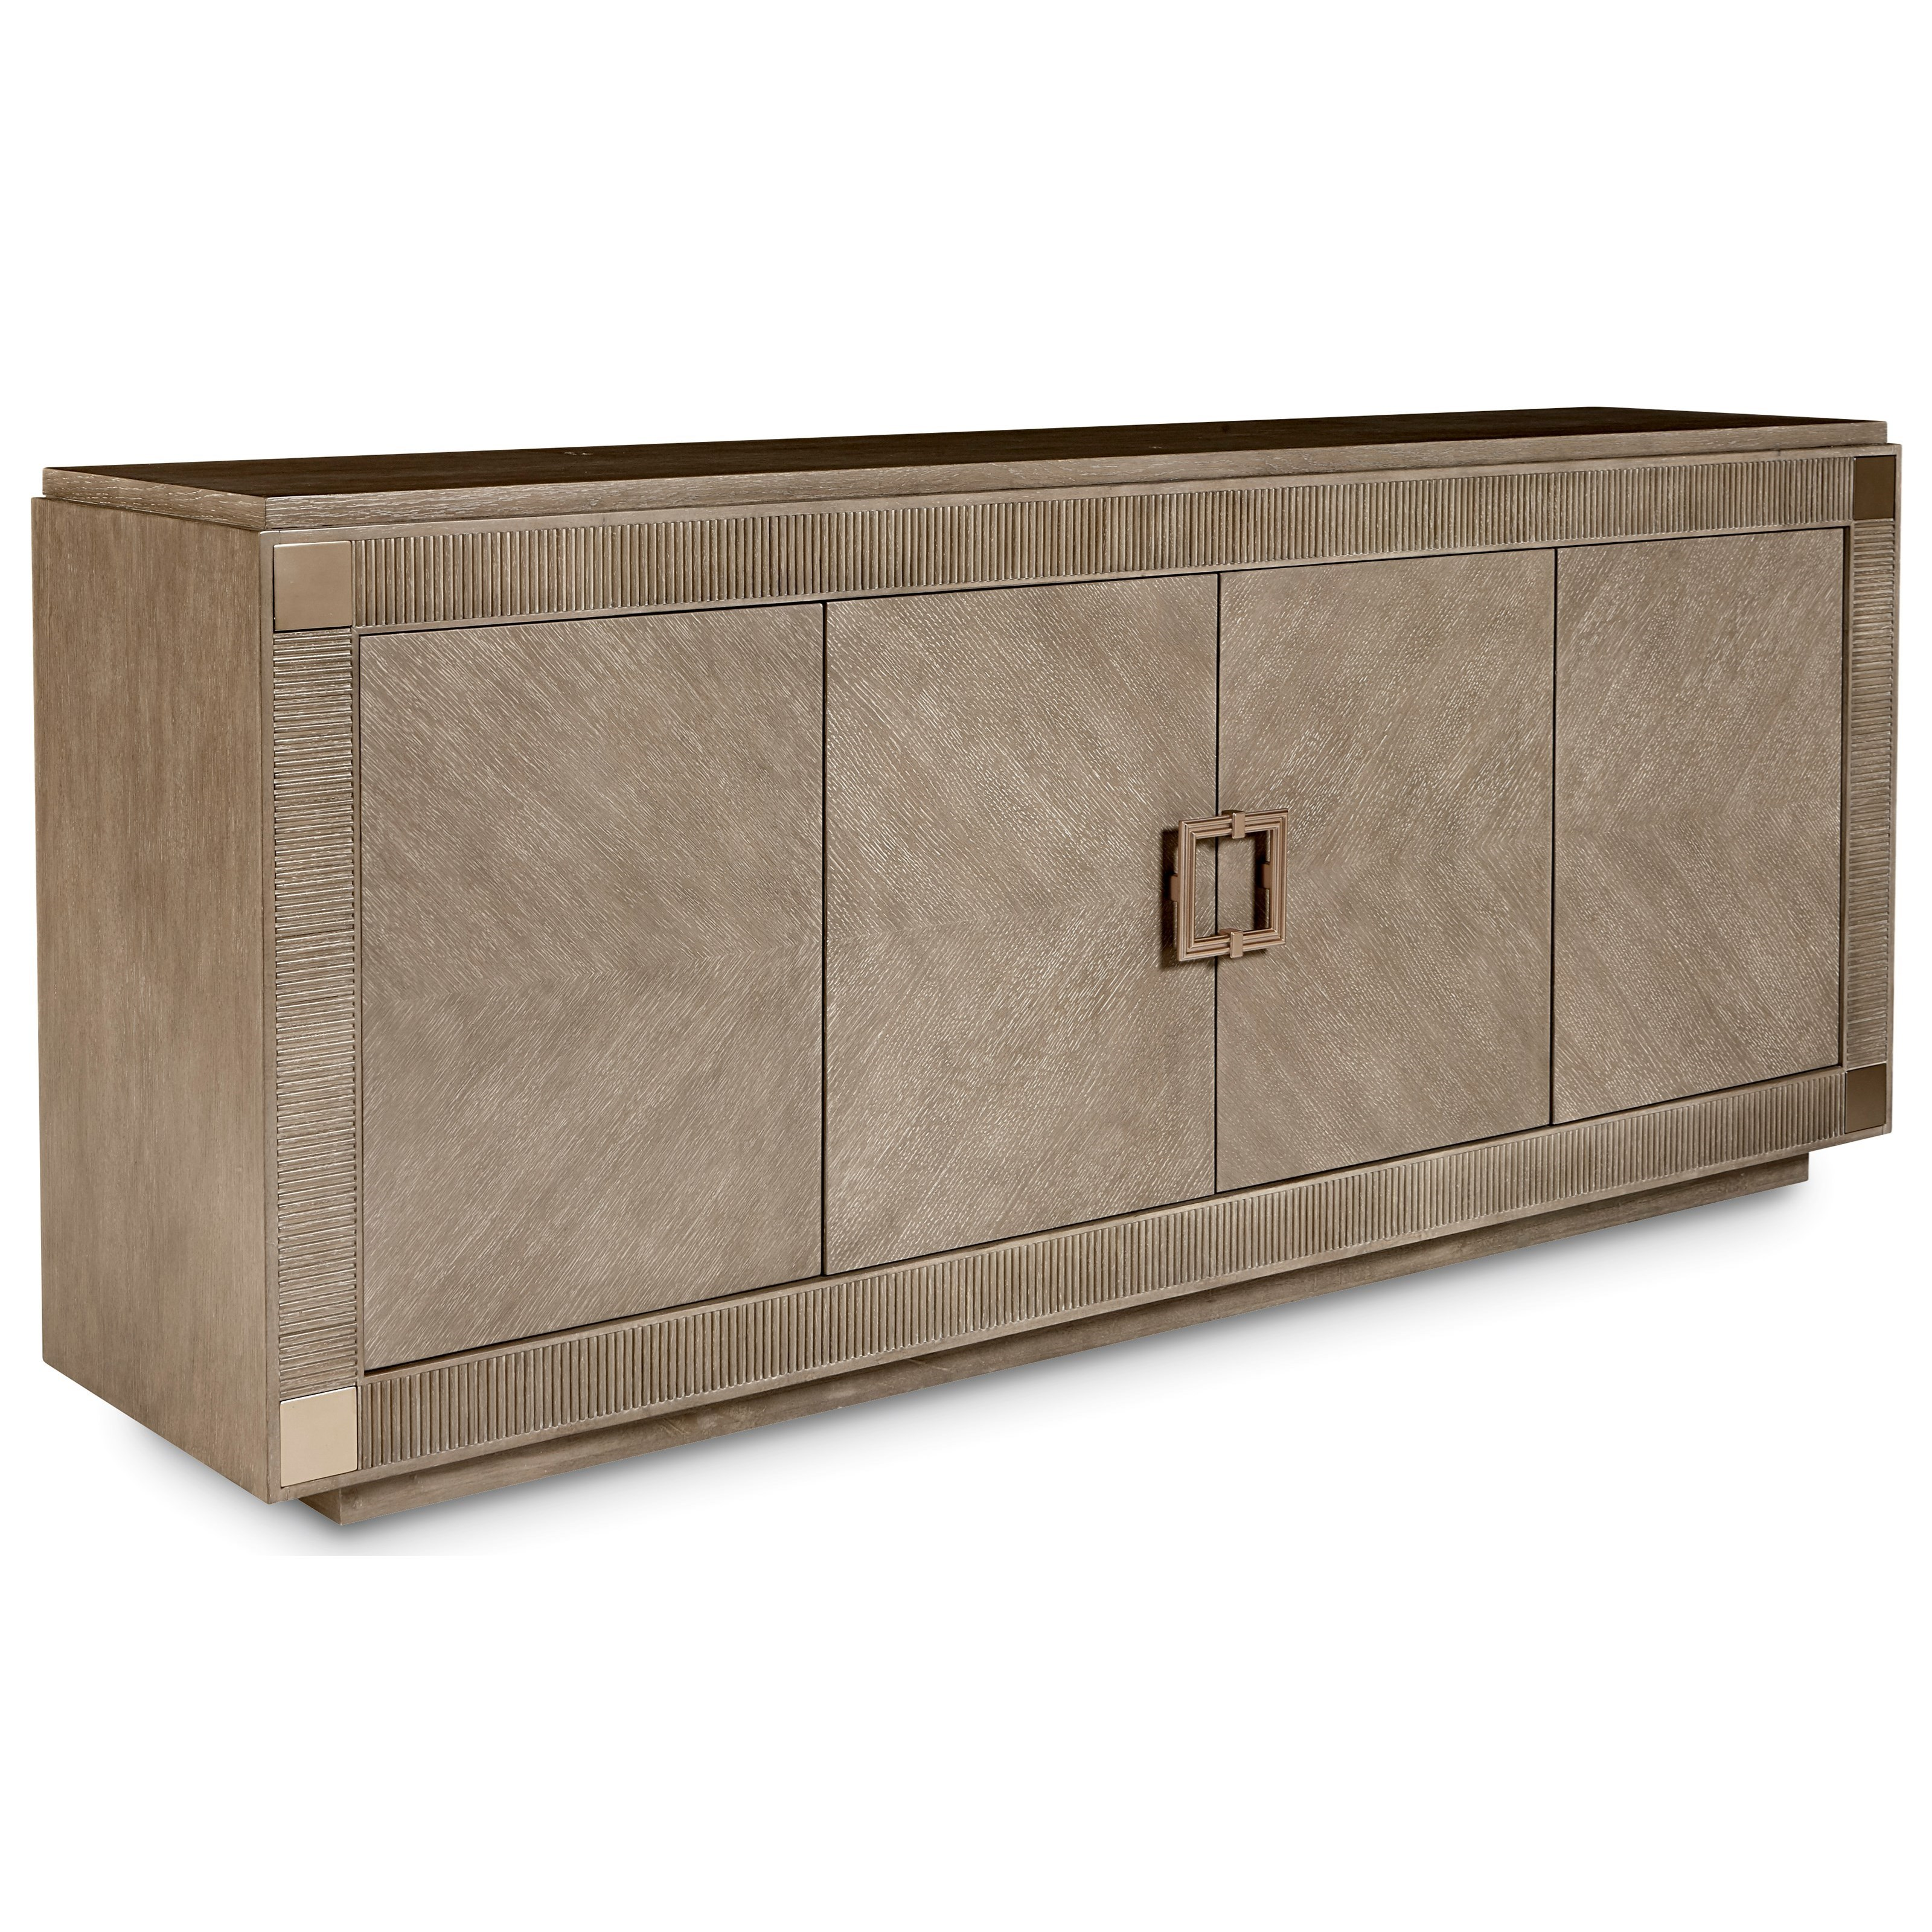 Cityscapes Hudson Entertainment Console by A.R.T. Furniture Inc at Baer's Furniture